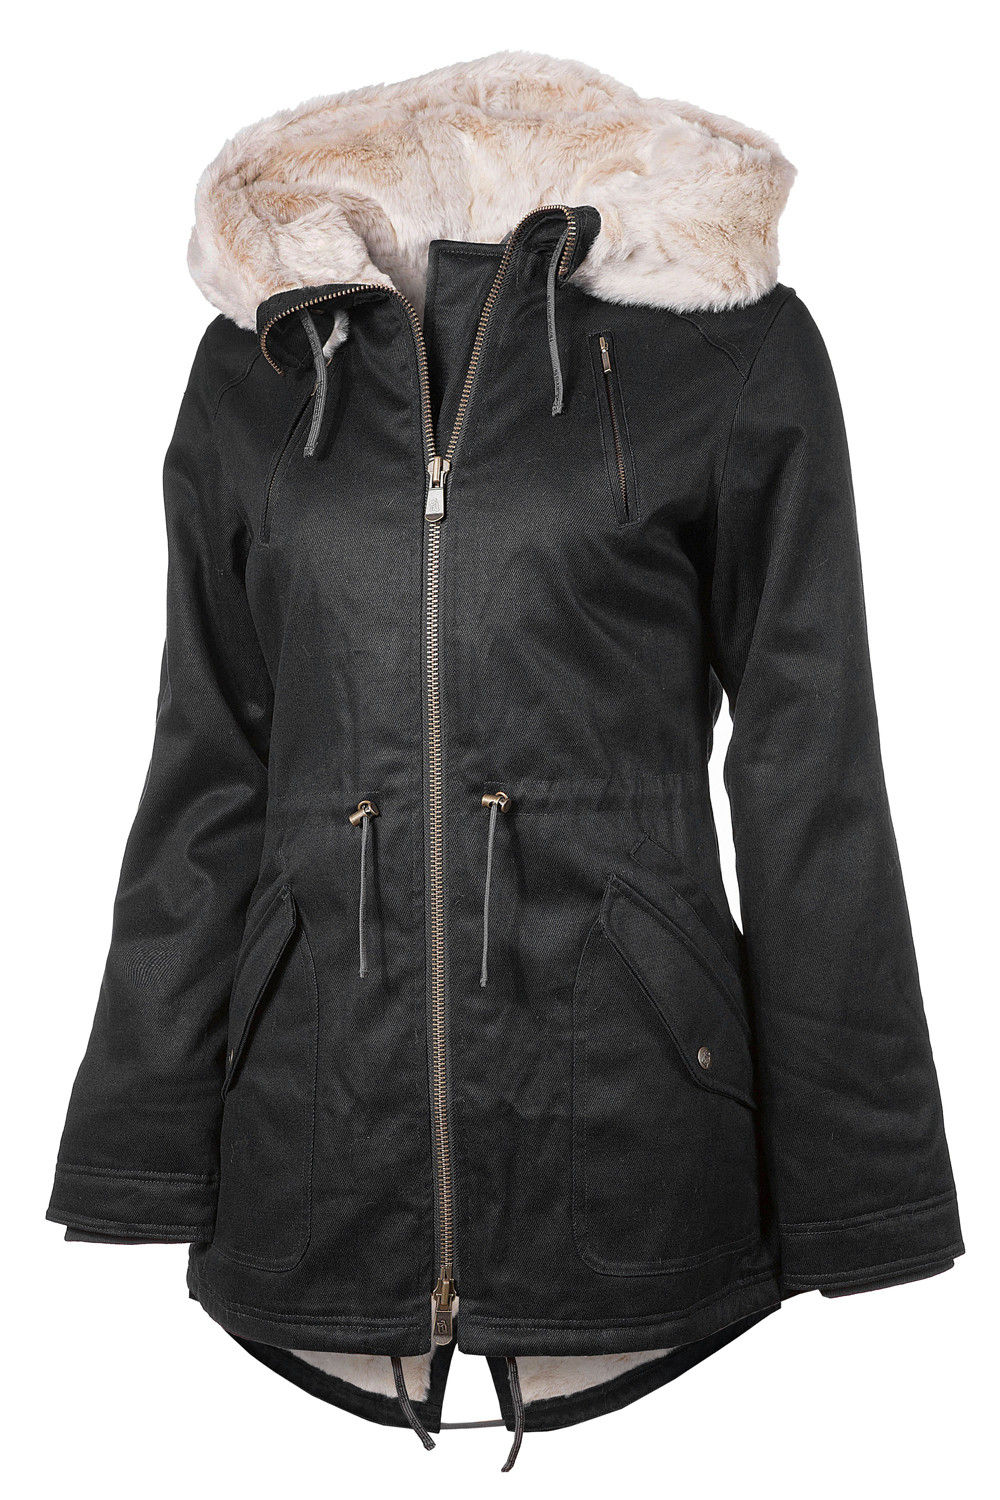 Top 5 animal-friendly winter jacket brands | Life | westerngazette.ca